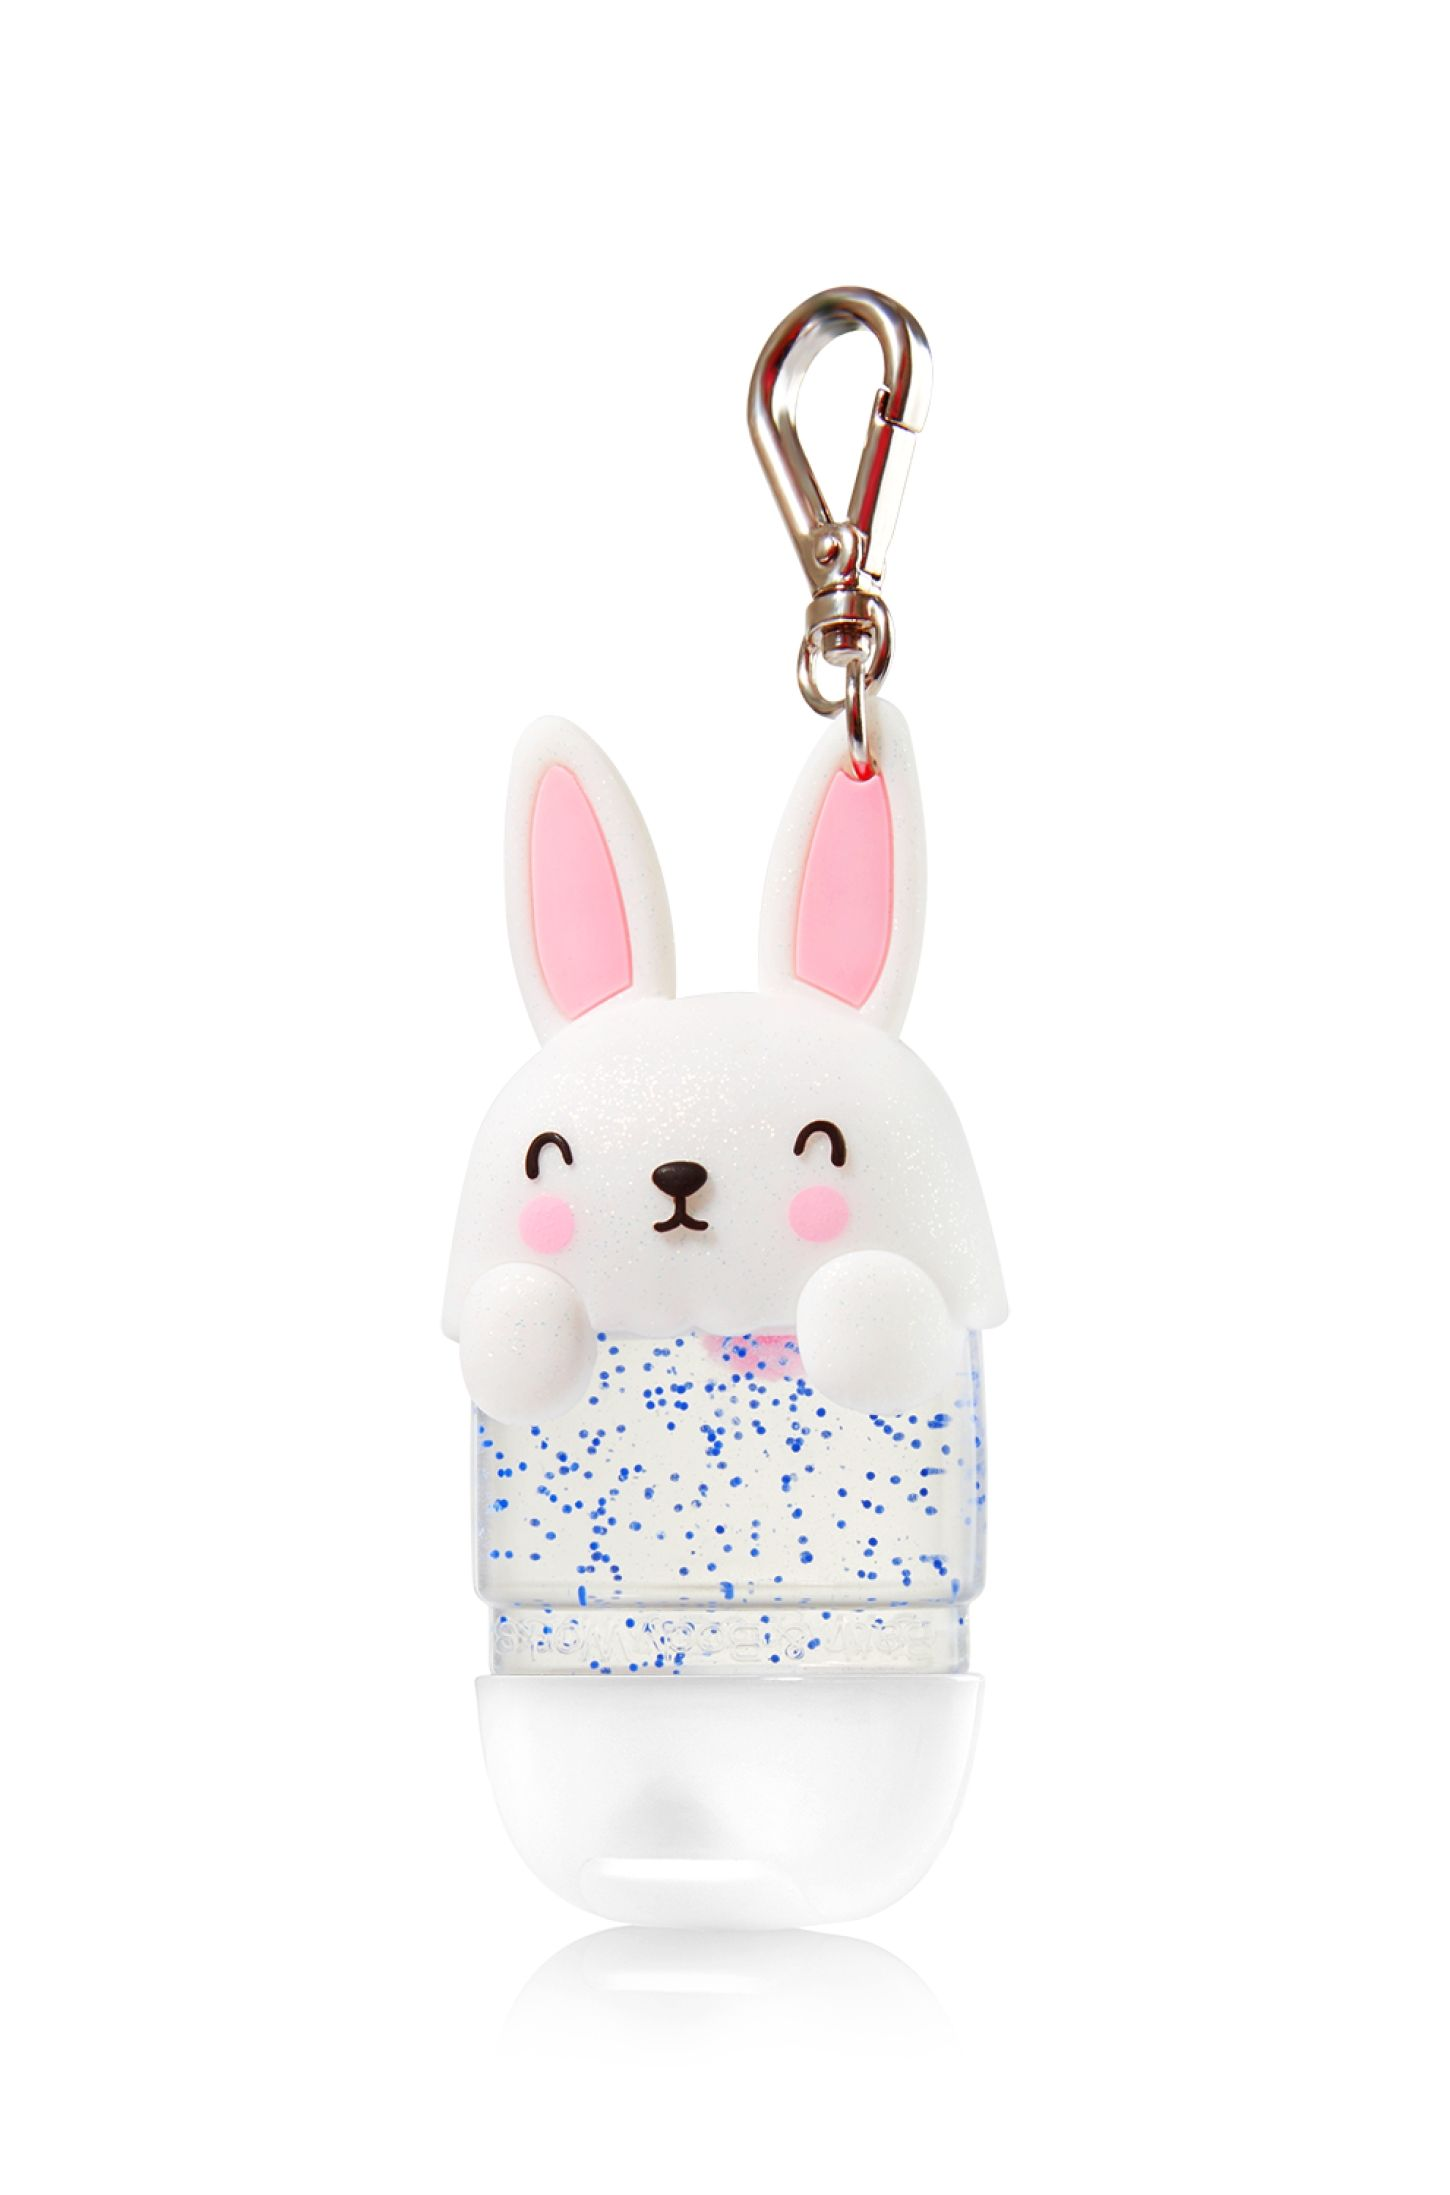 Bunny Pocketbac Holder Bath Body Works Bath Body Works